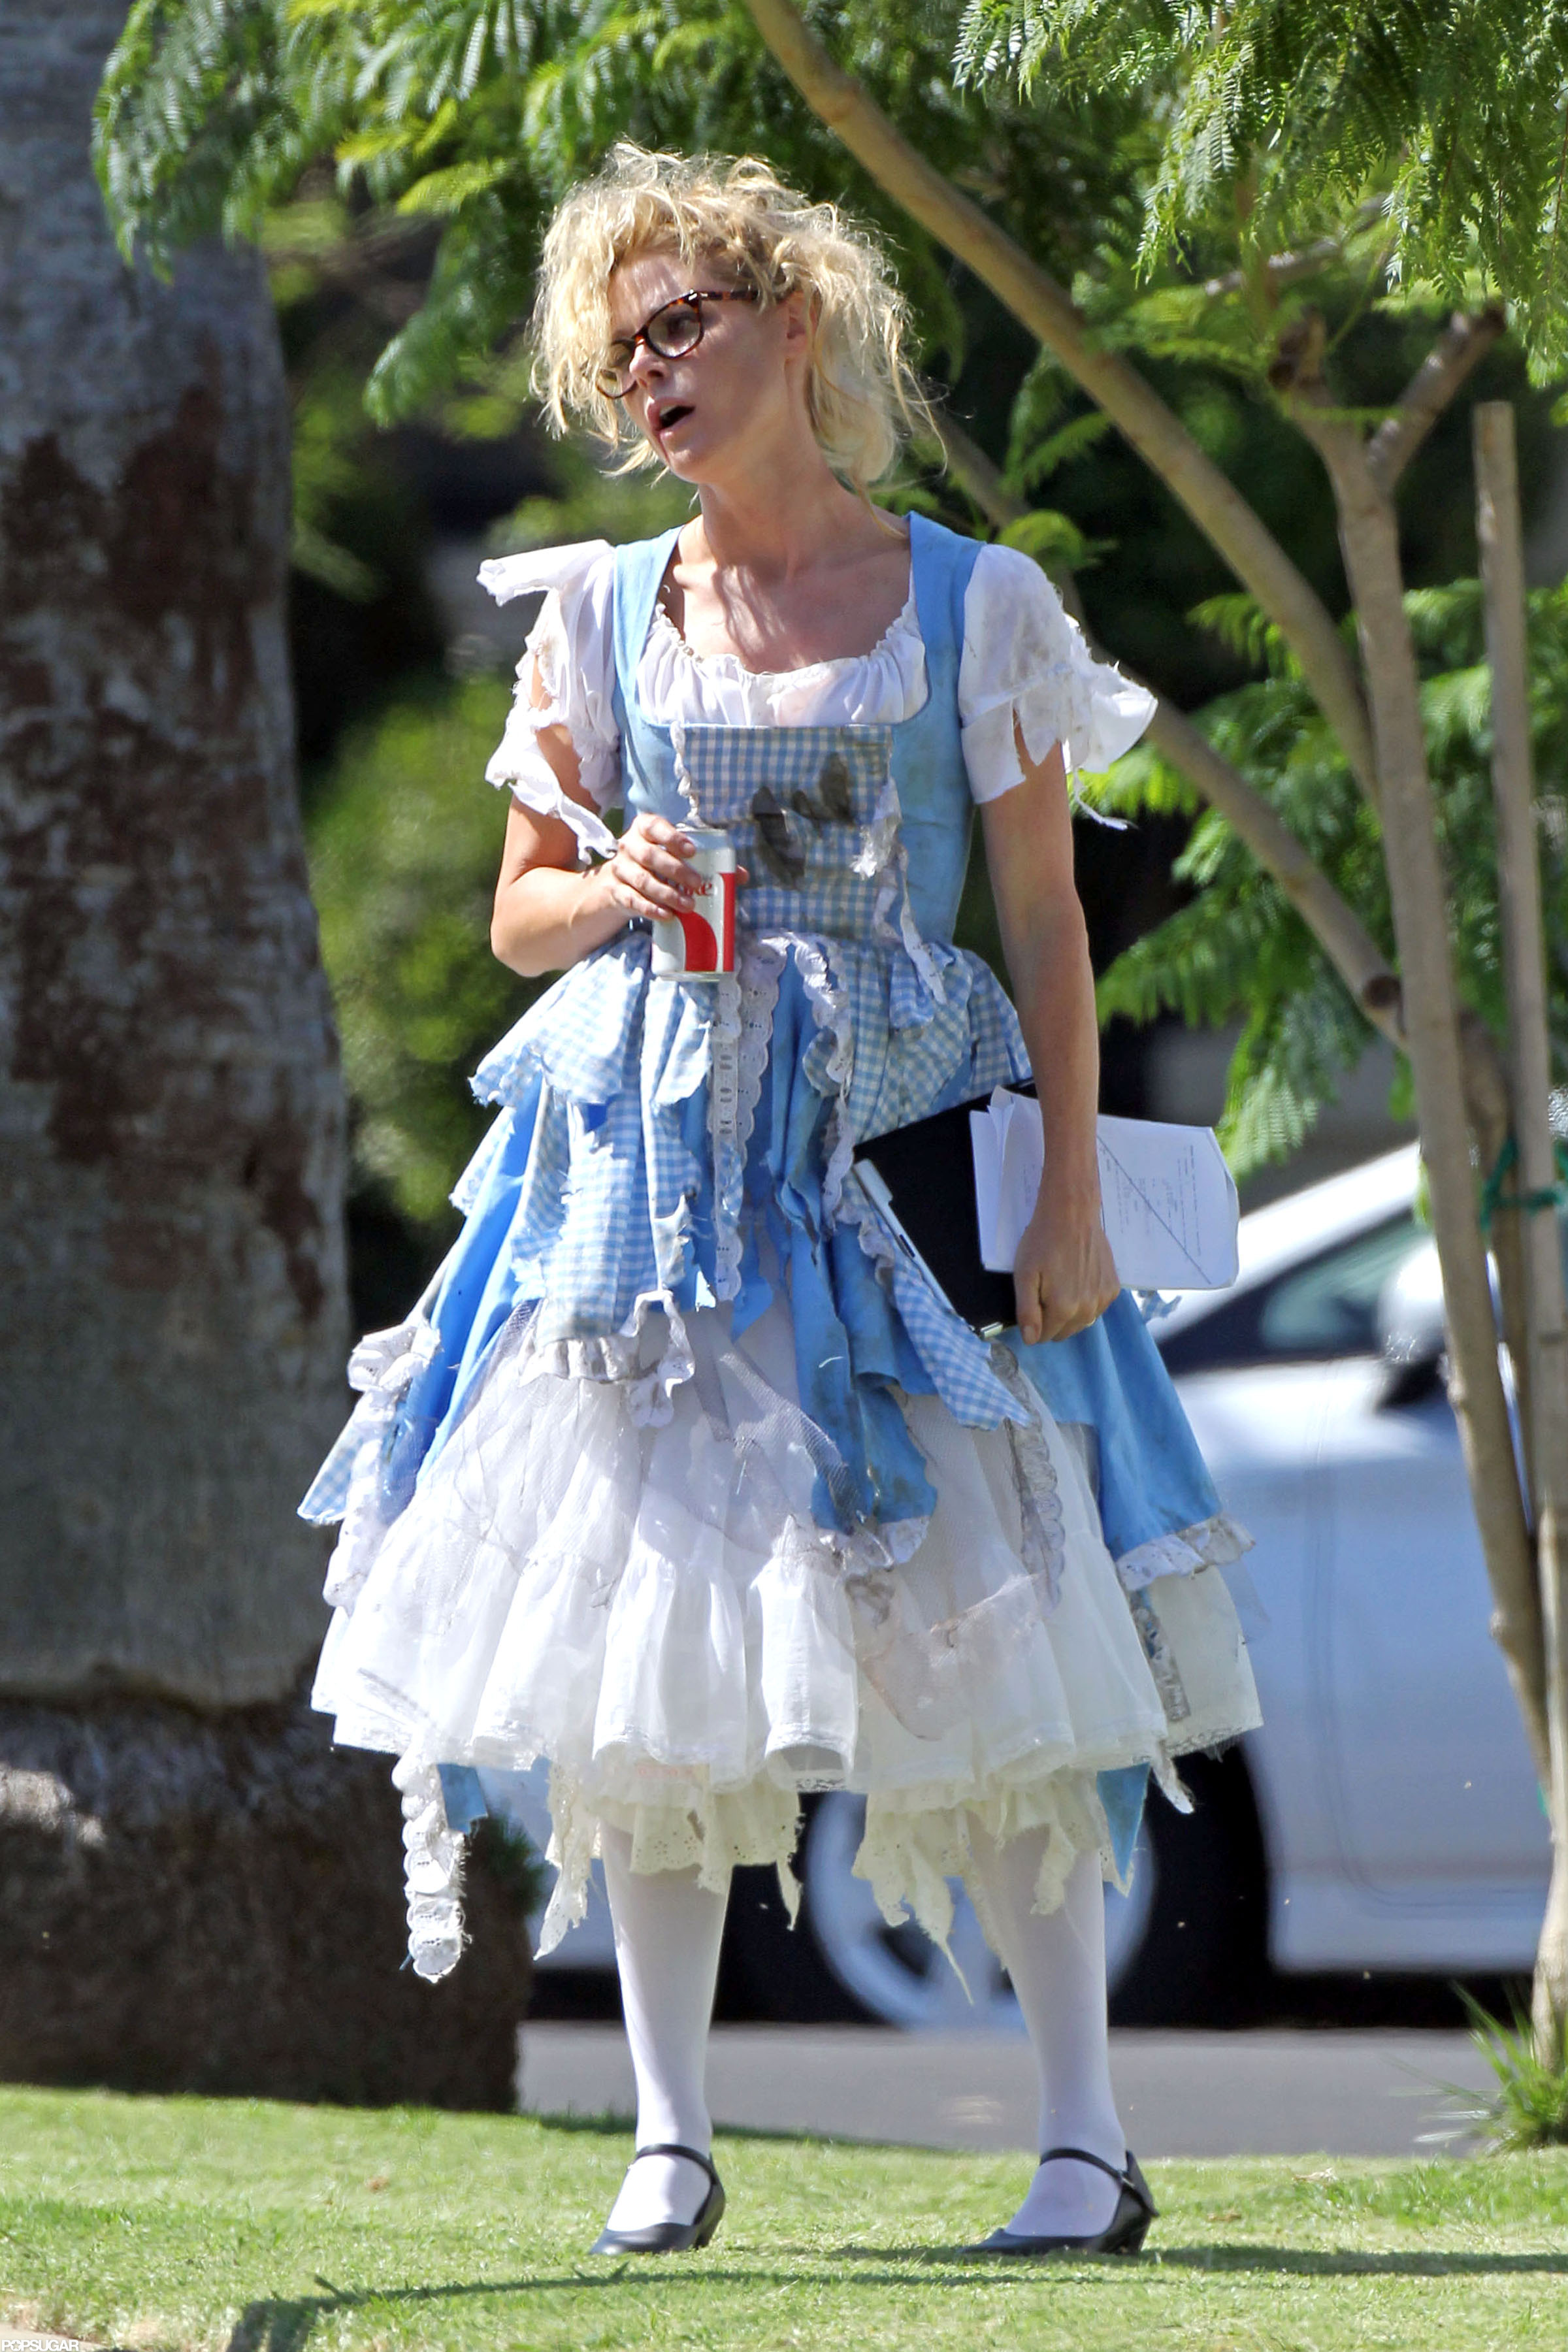 Julie Bowen got a head start on Halloween fun in a costume on the set of Modern Family in LA.